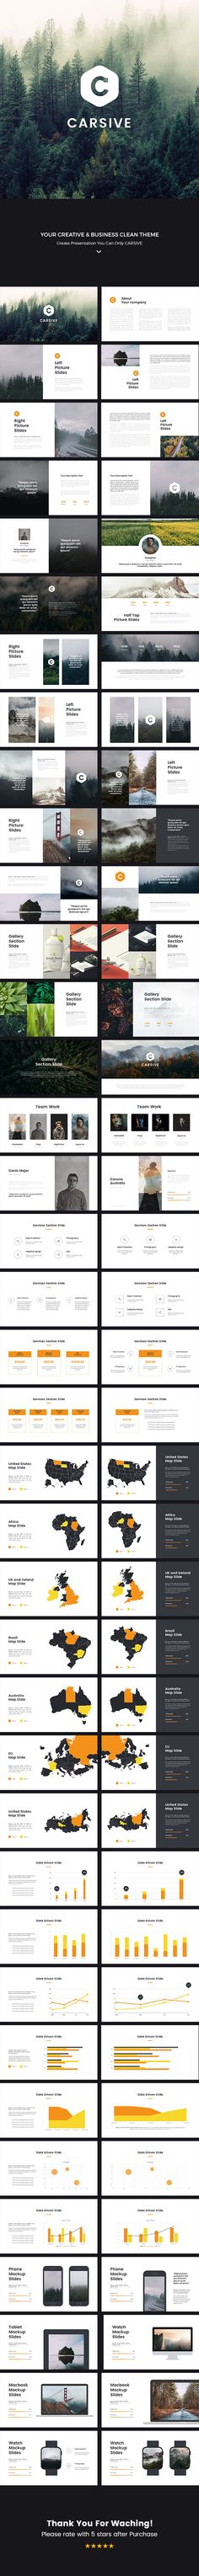 Carsive Clean Keynote Template — Keynote KEY #hd #shape • Download ➝ https://graphicriver.net/item/carsive-clean-keynote-template/19128521?ref=pxcr